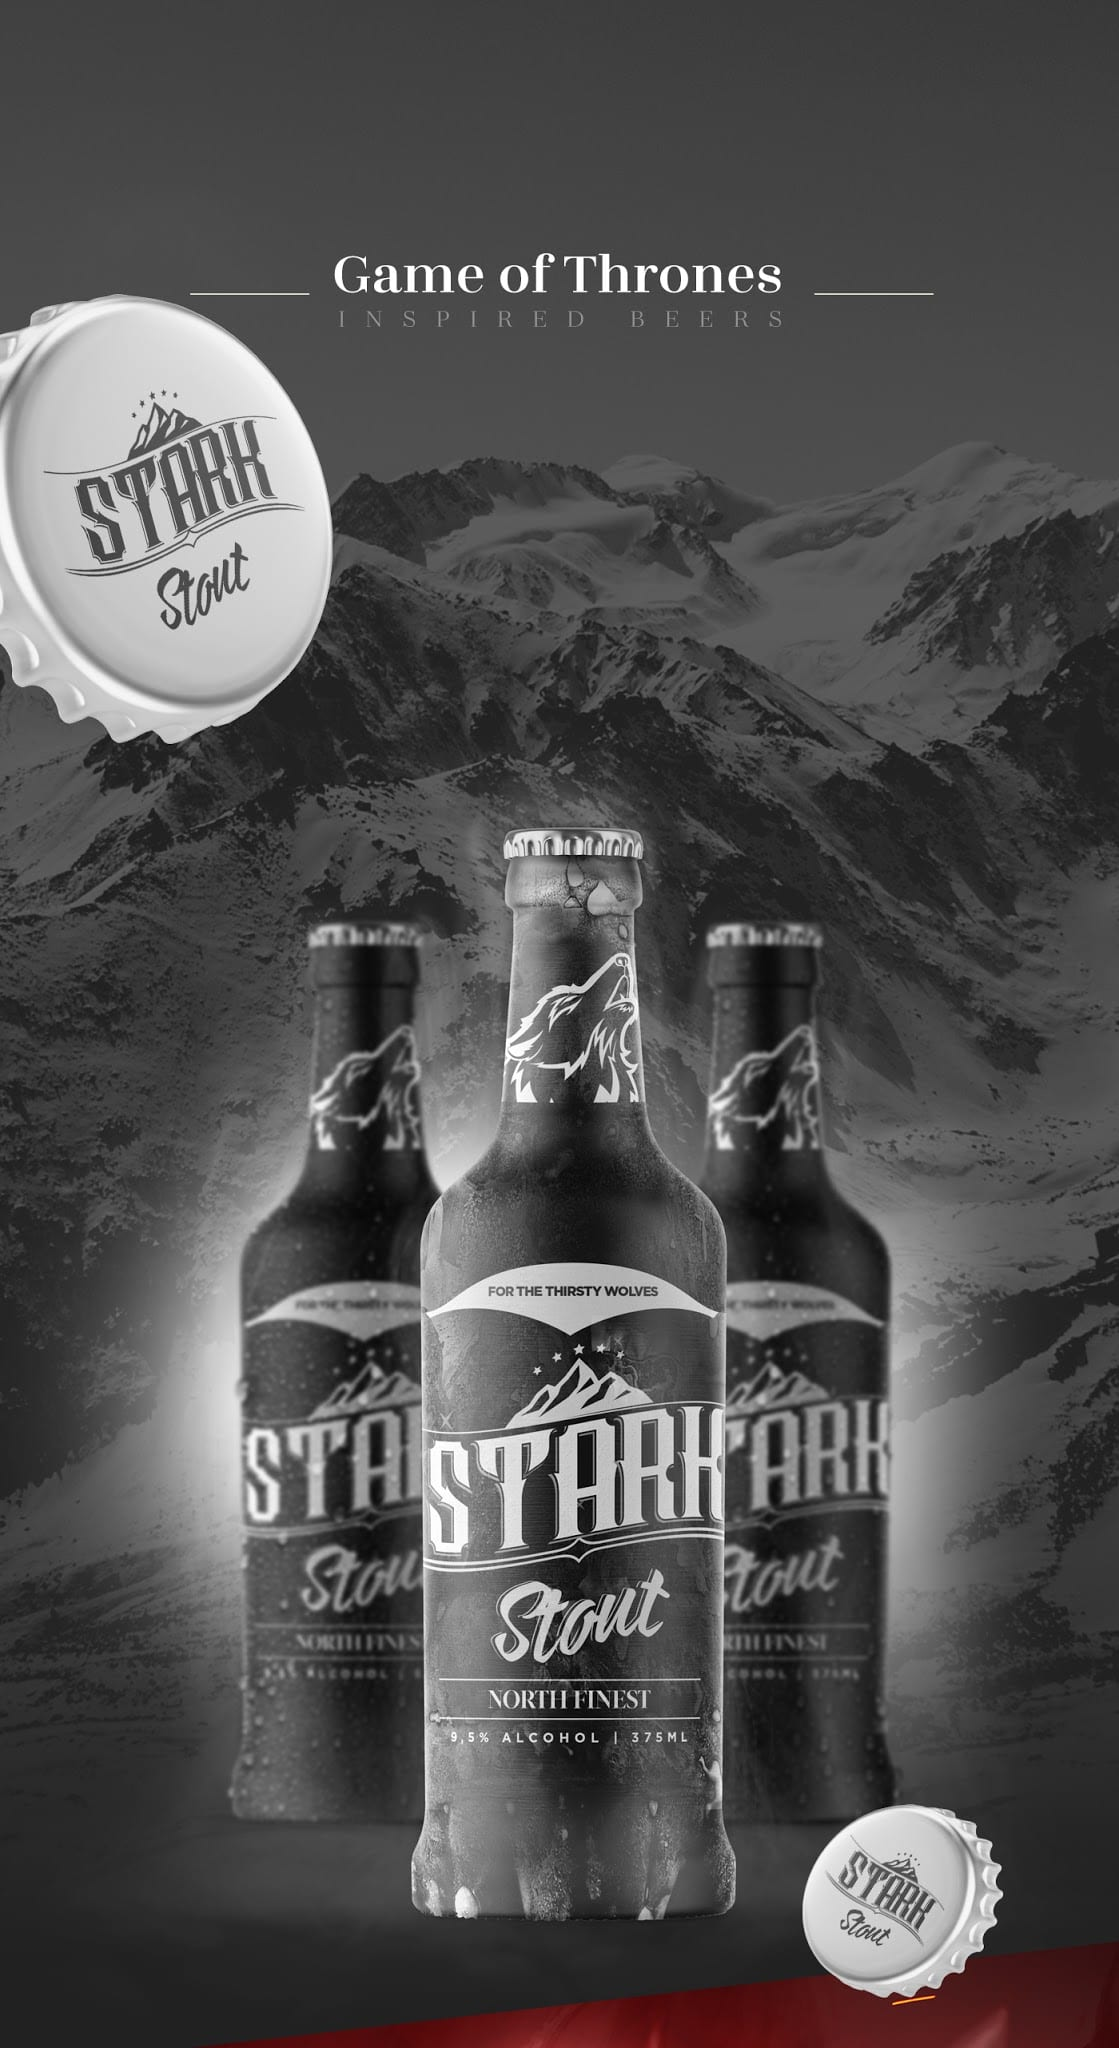 Game of Thrones Beers 1 - Řada piv Game of Thrones (koncept)